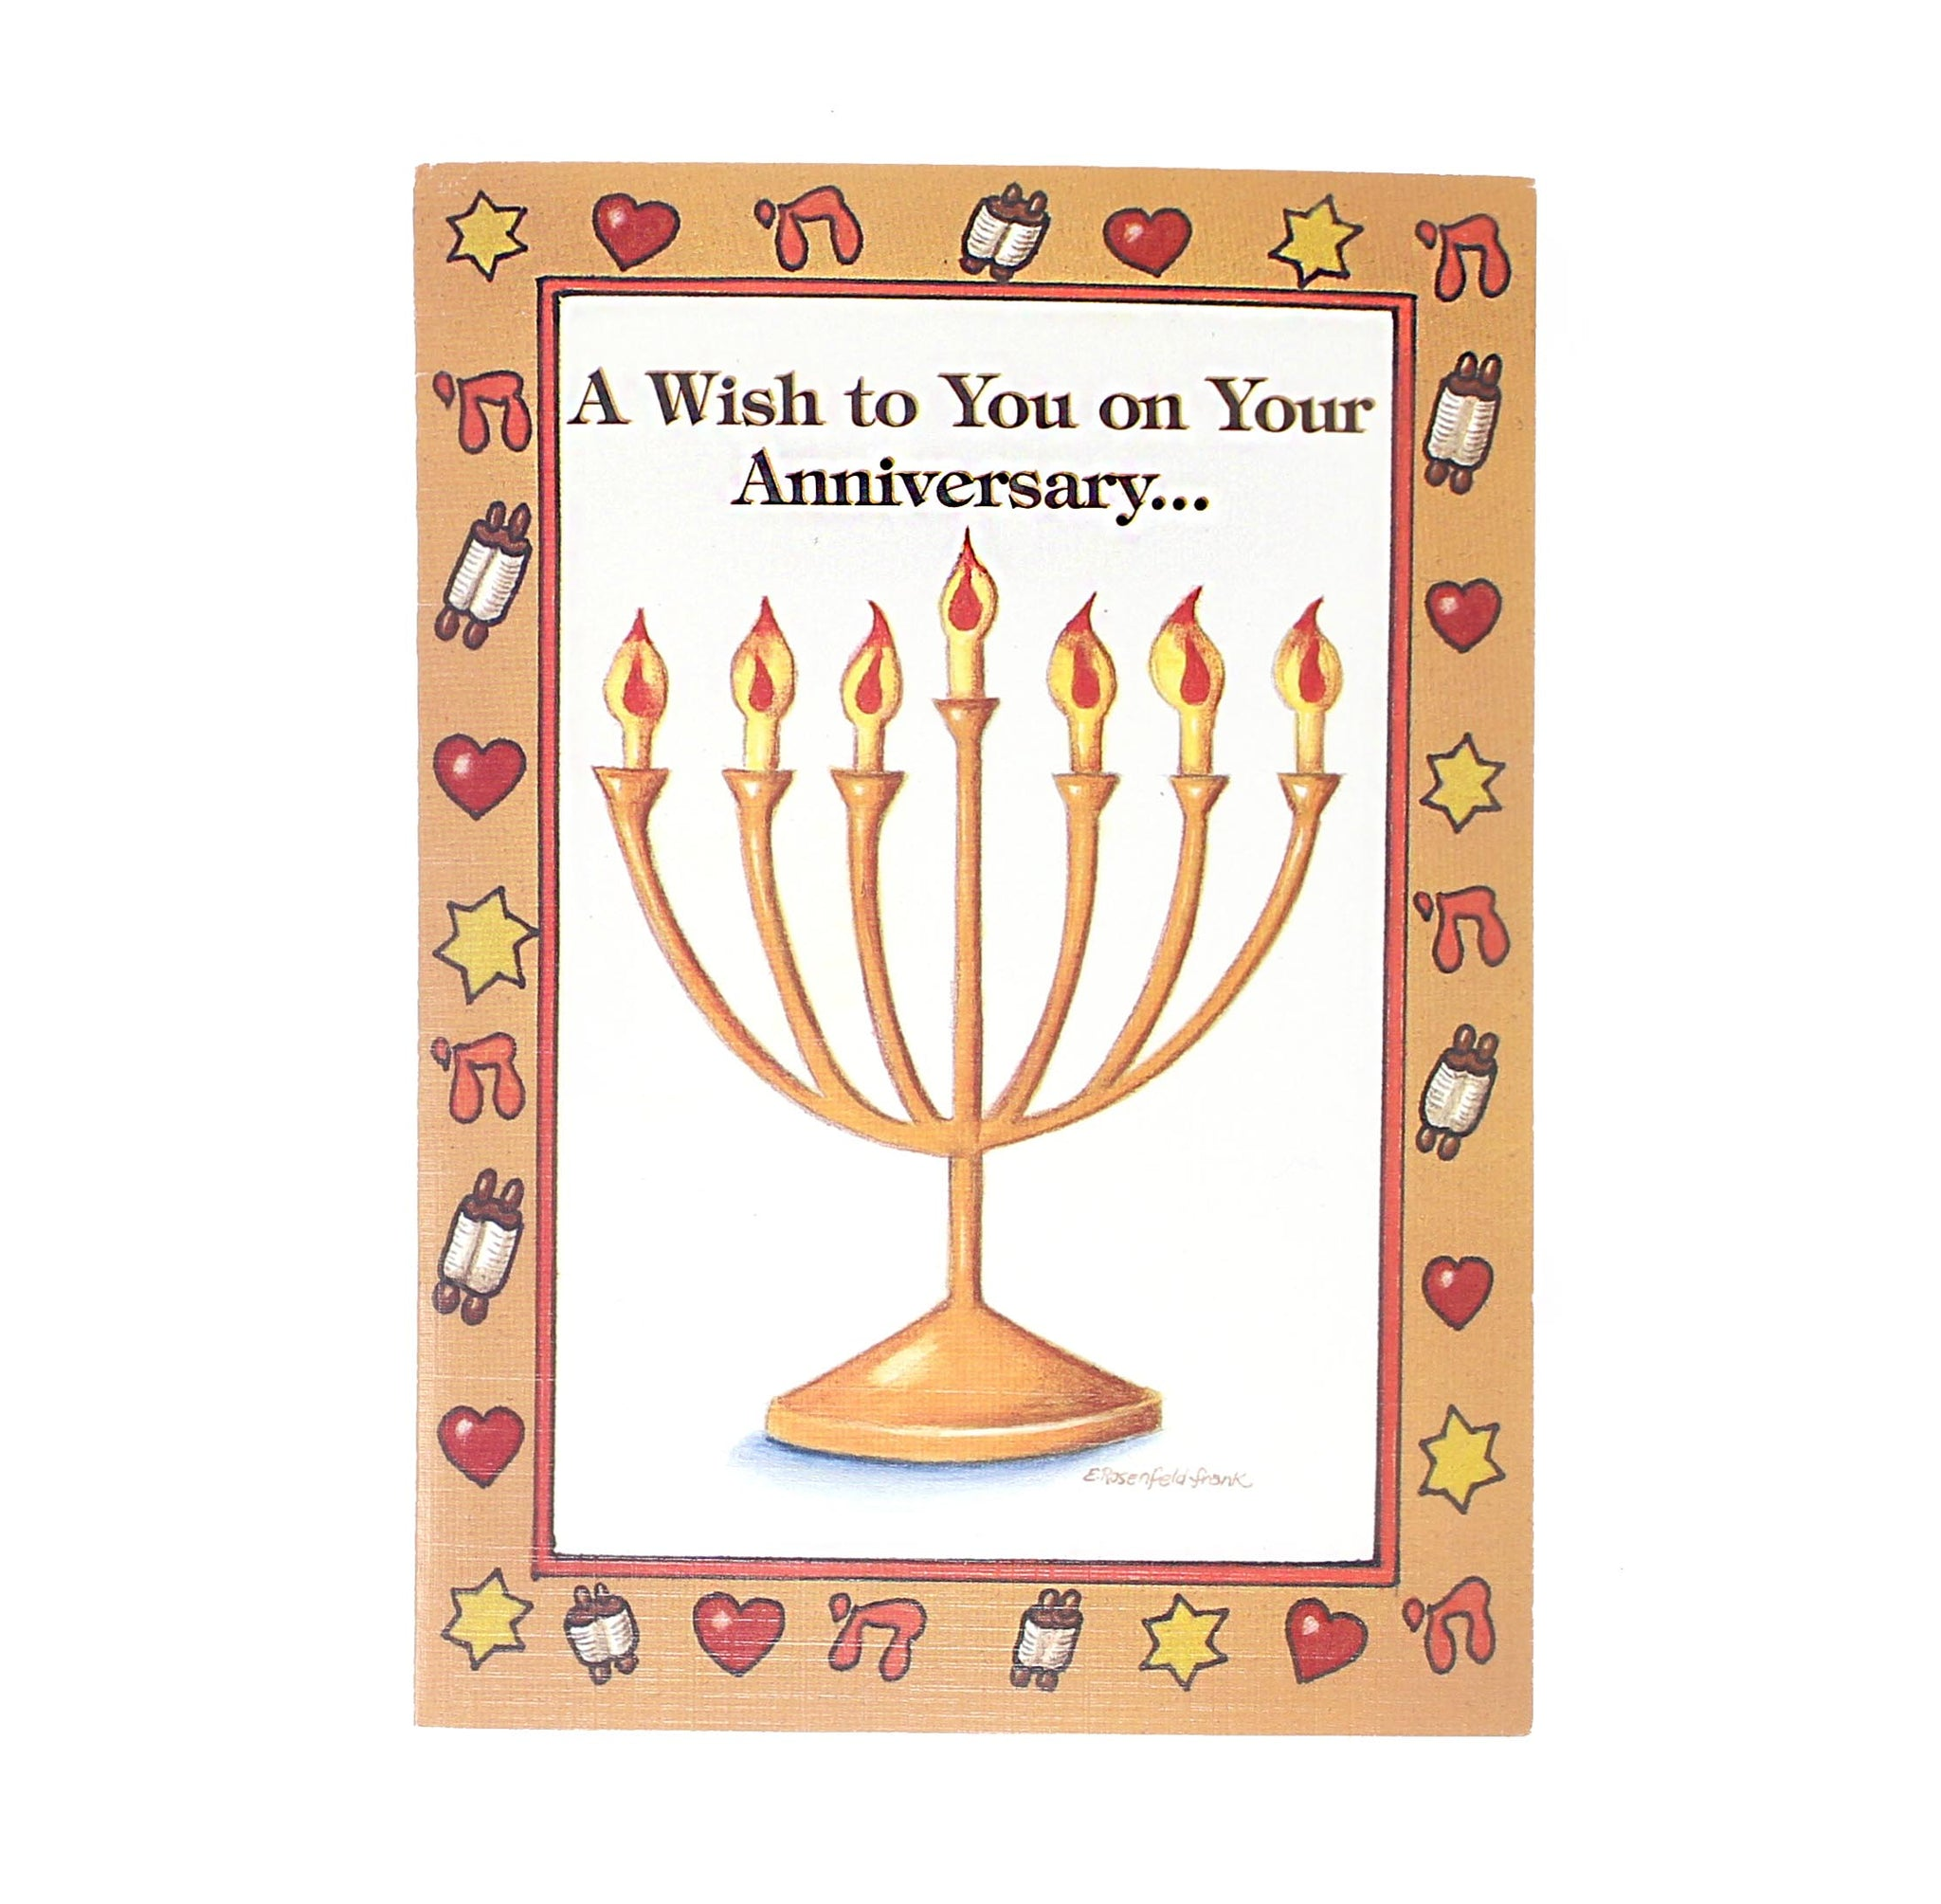 A Wish to You on Your Anniversary Card